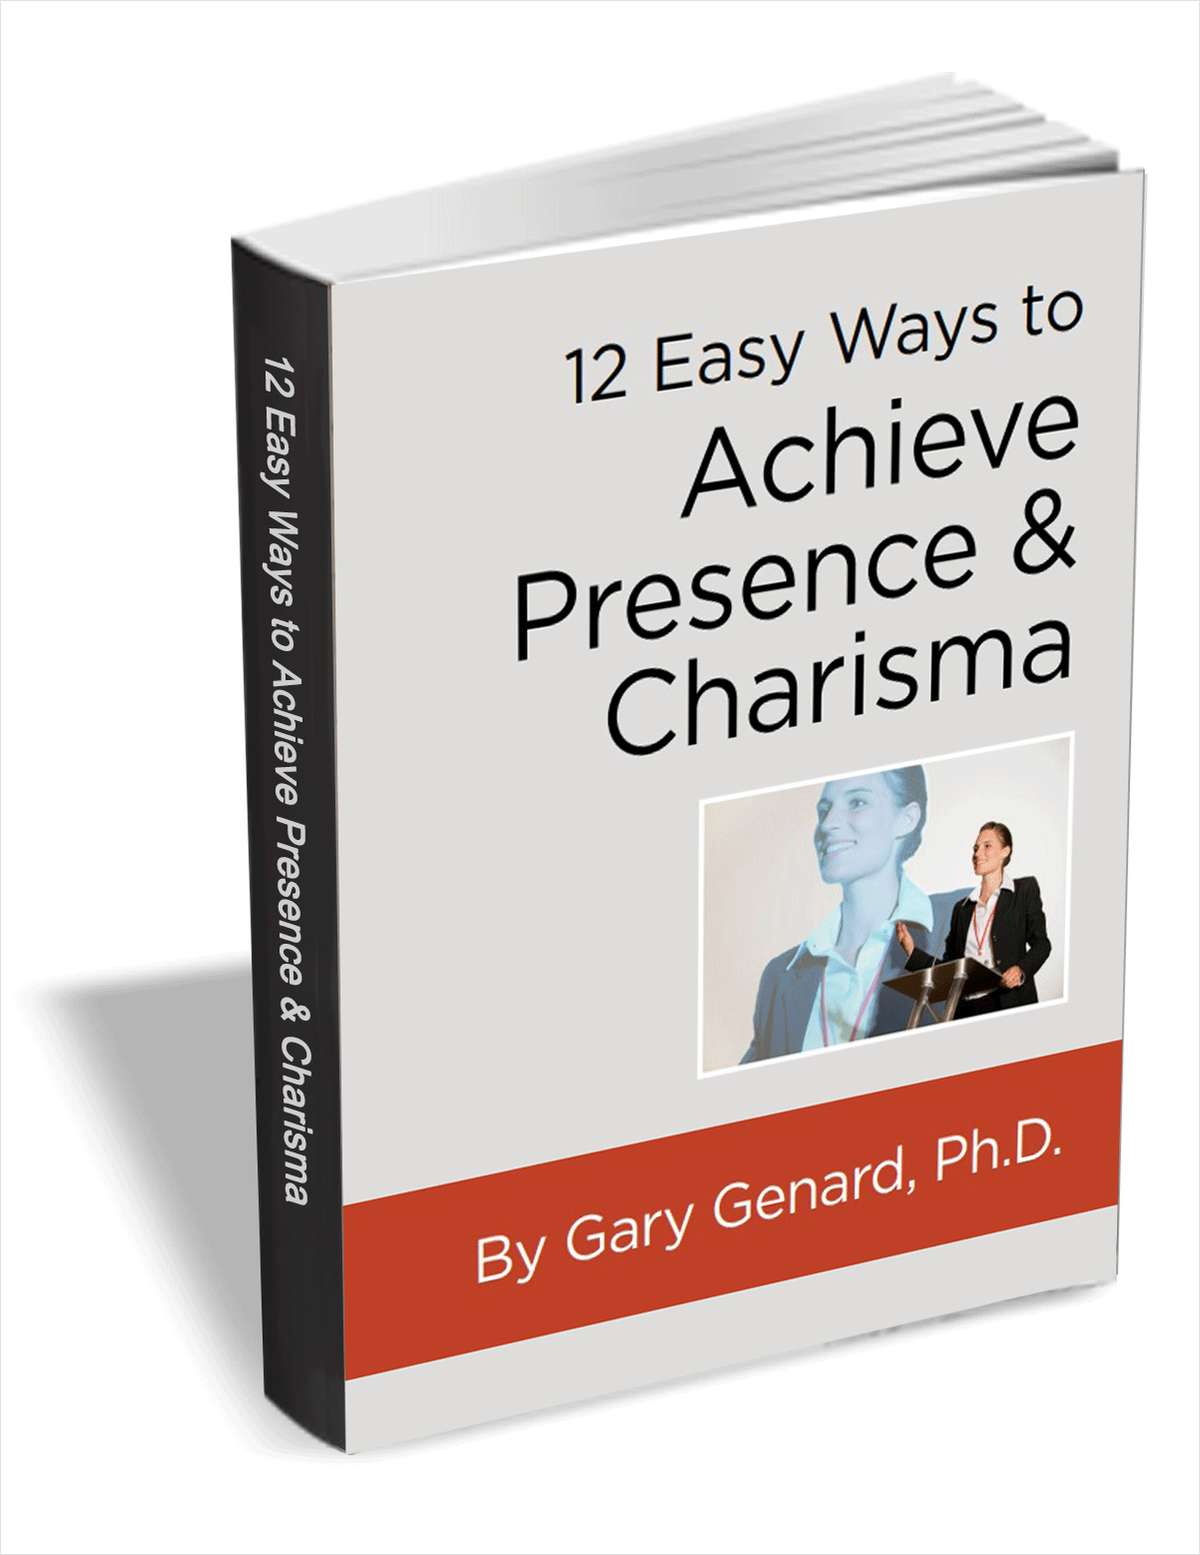 12 Easy Ways to Achieve Presence & Charisma